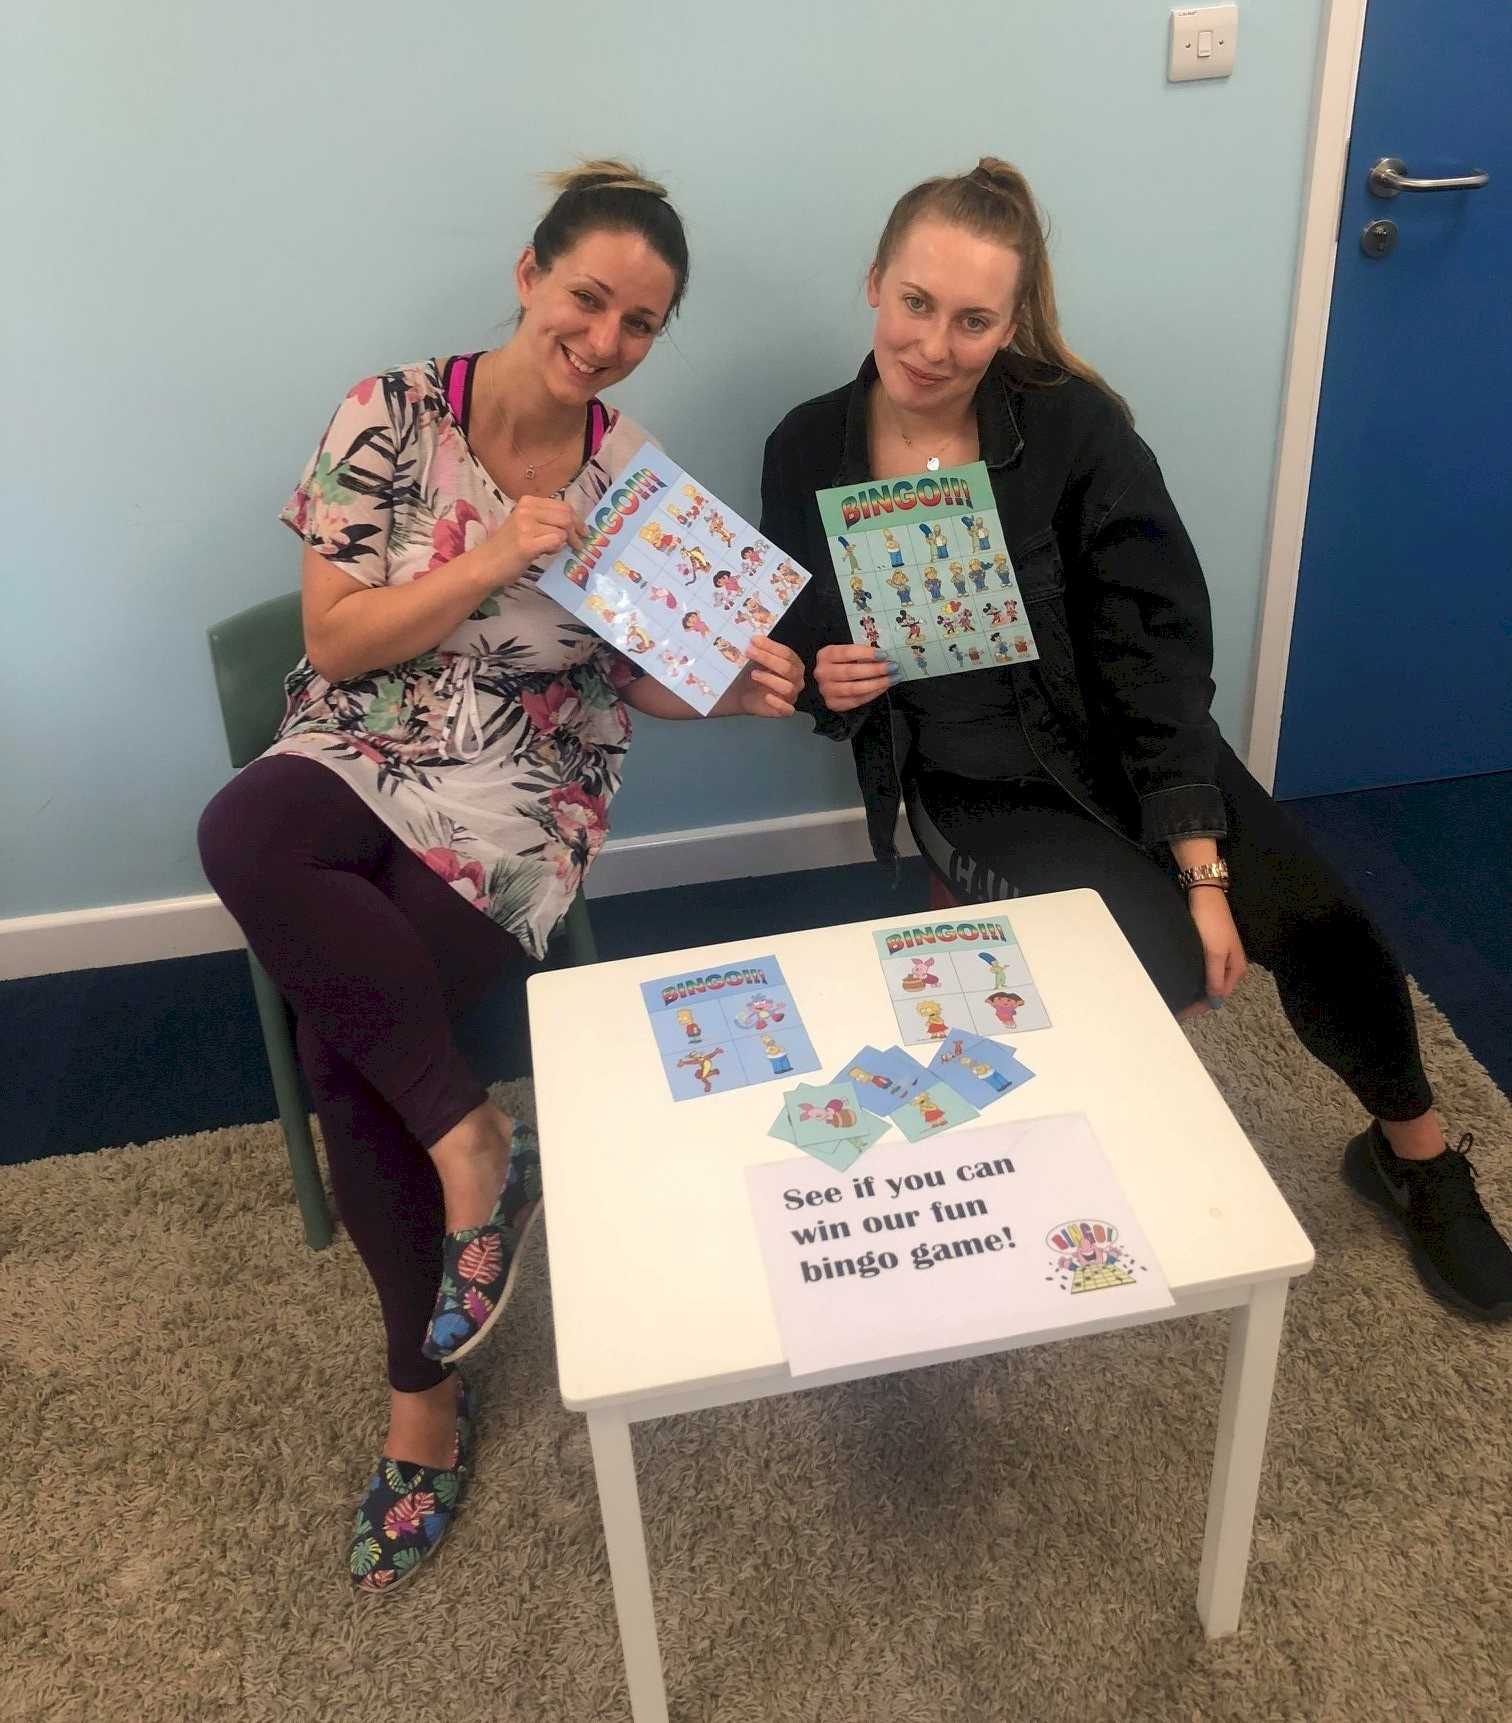 Researchers, Judit and Beth, show off the bingo game